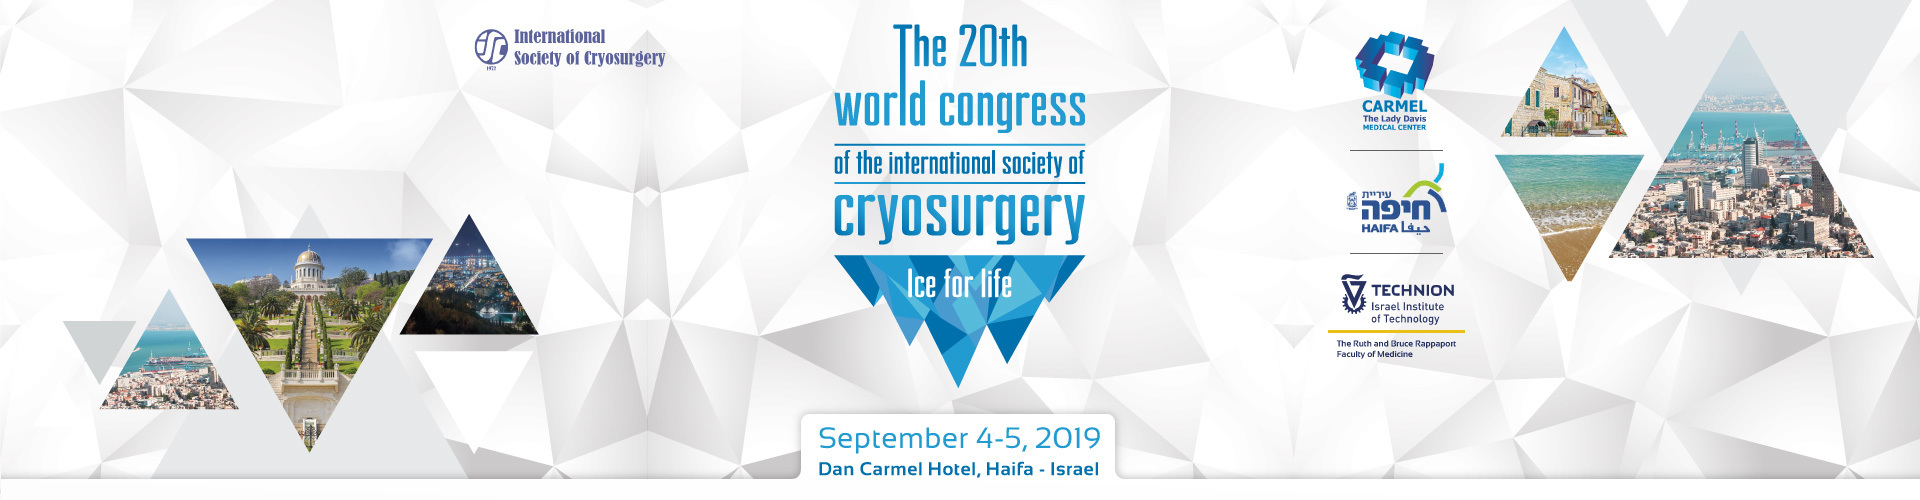 20th World Congress of the International Society of Cryosurgery